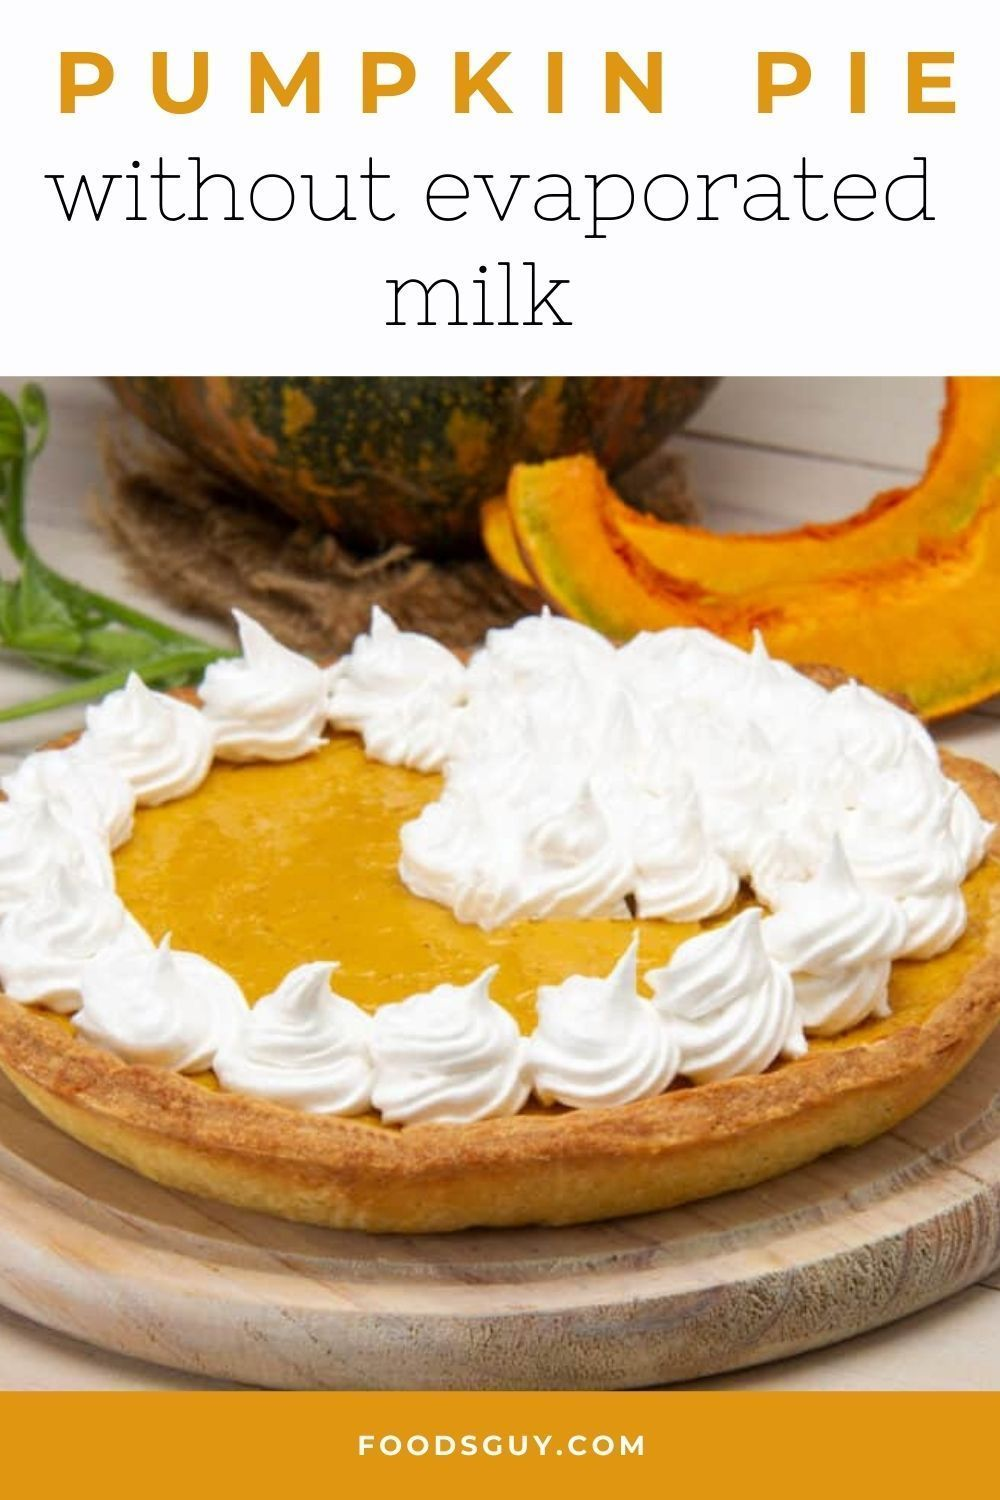 Pumpkin Pie Without Evaporated Milk Recipe In 2020 Pie Filling Recipes Pumpkin Pie Pumpkin Pie Recipe Without Condensed Milk